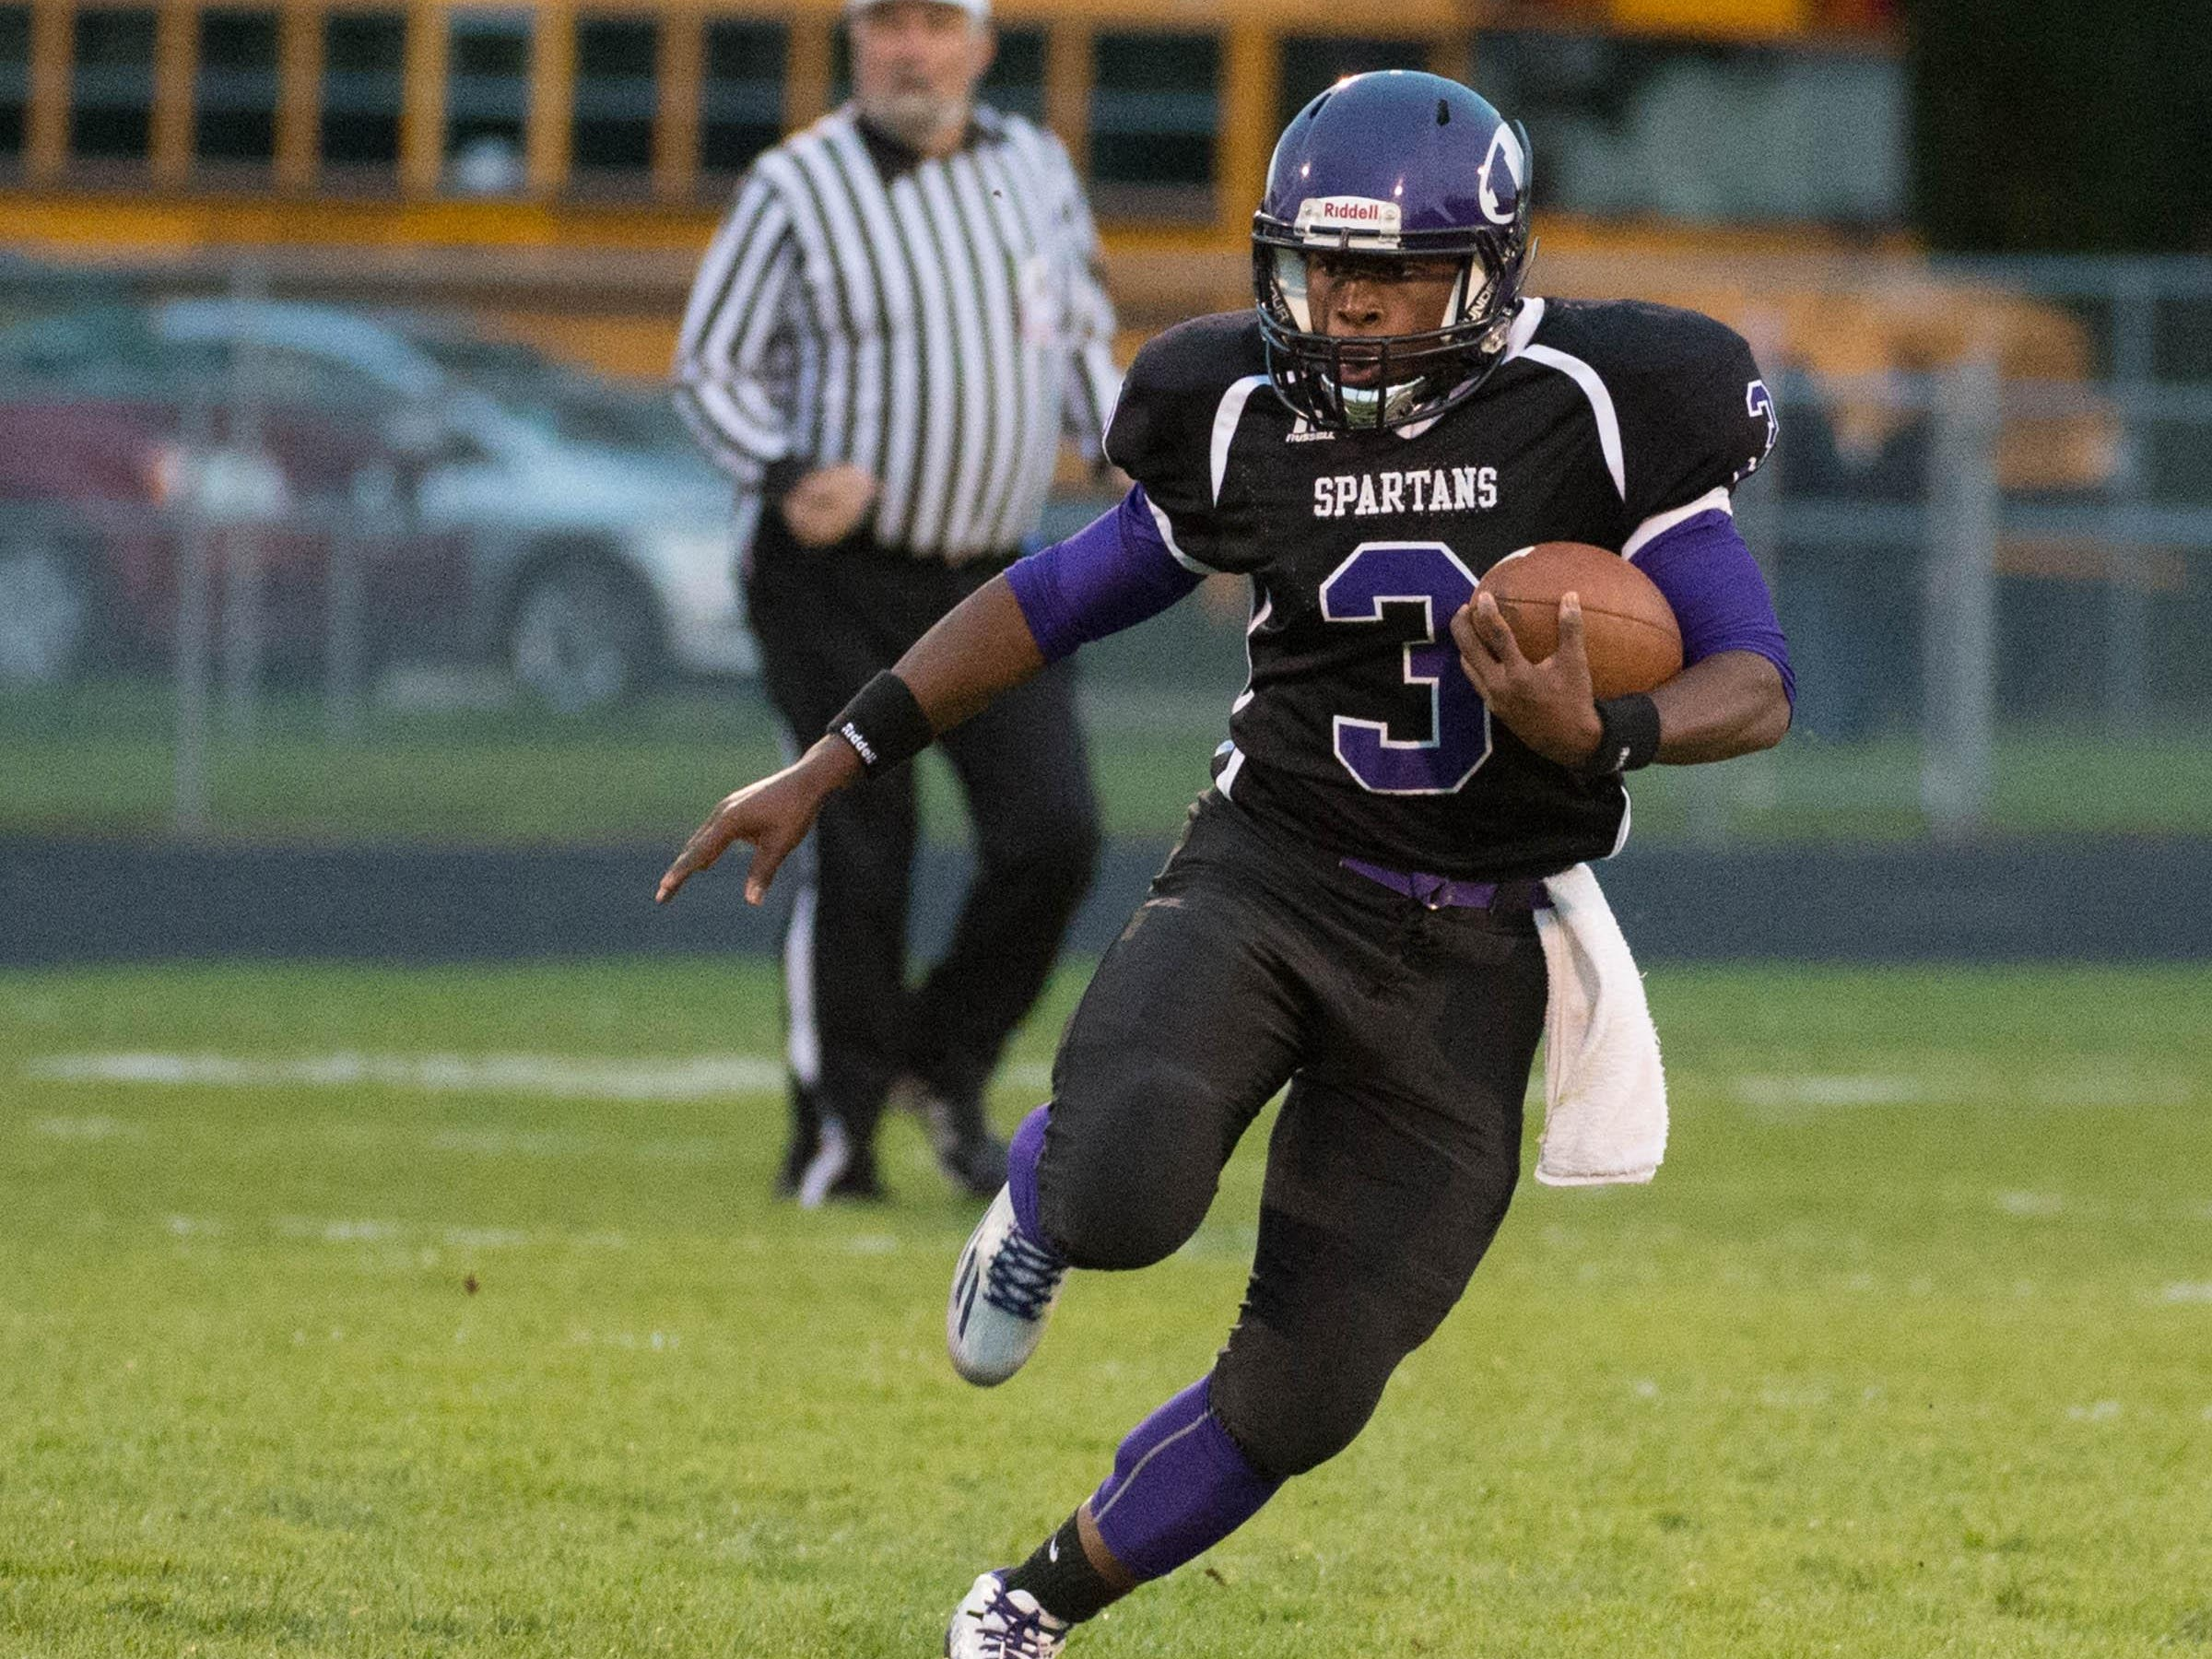 Lakeview's Jay'Vion Settles advances the ball against Kalamazoo Central Friday evening.